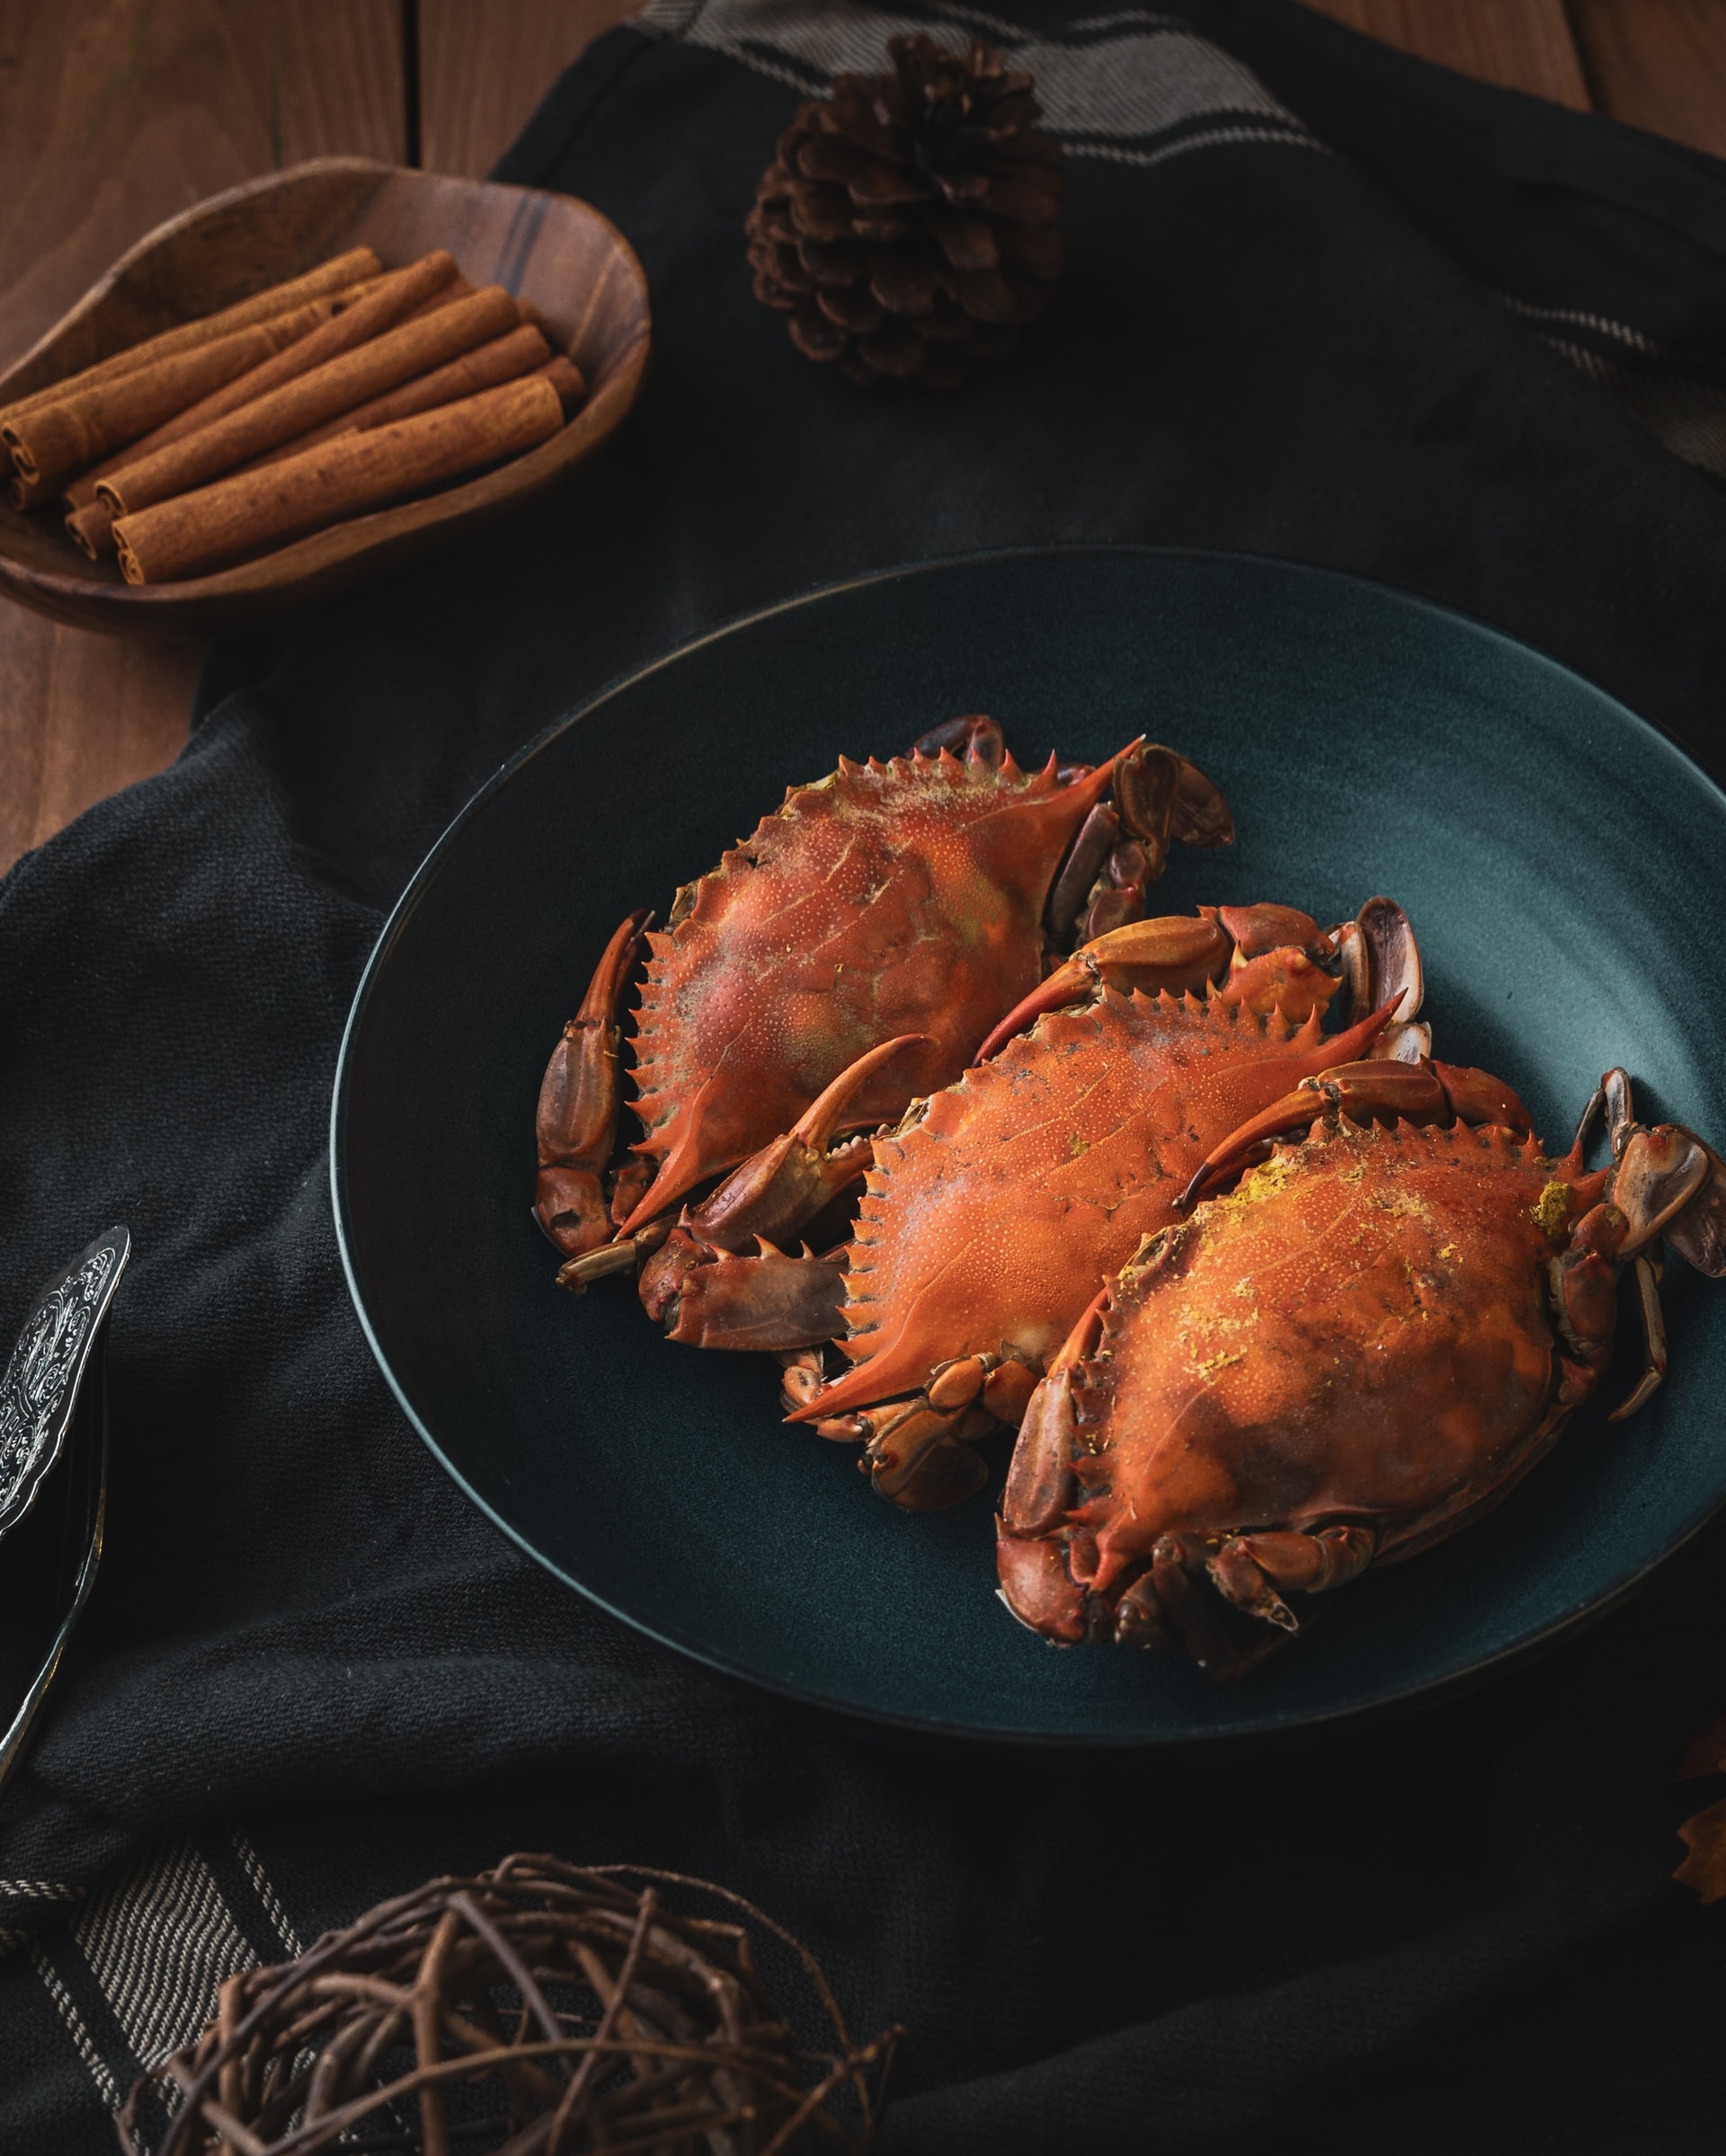 Crabs in a pan